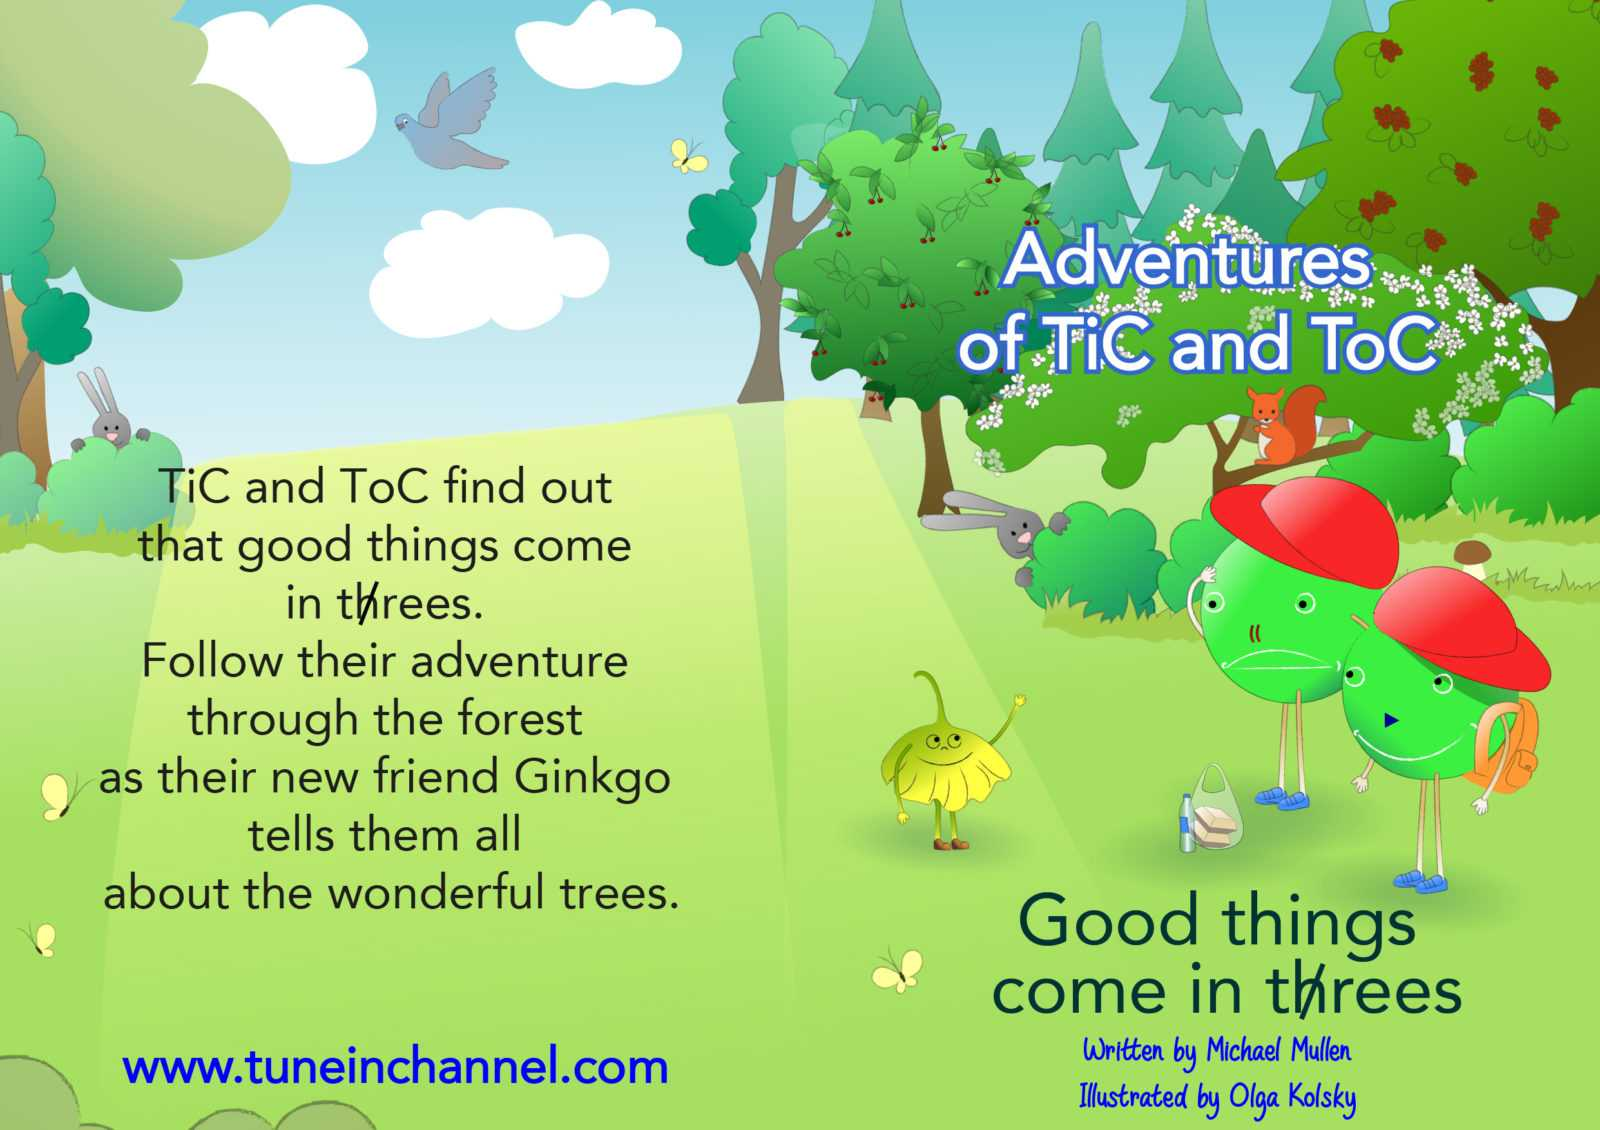 Adventures of TiC and ToC